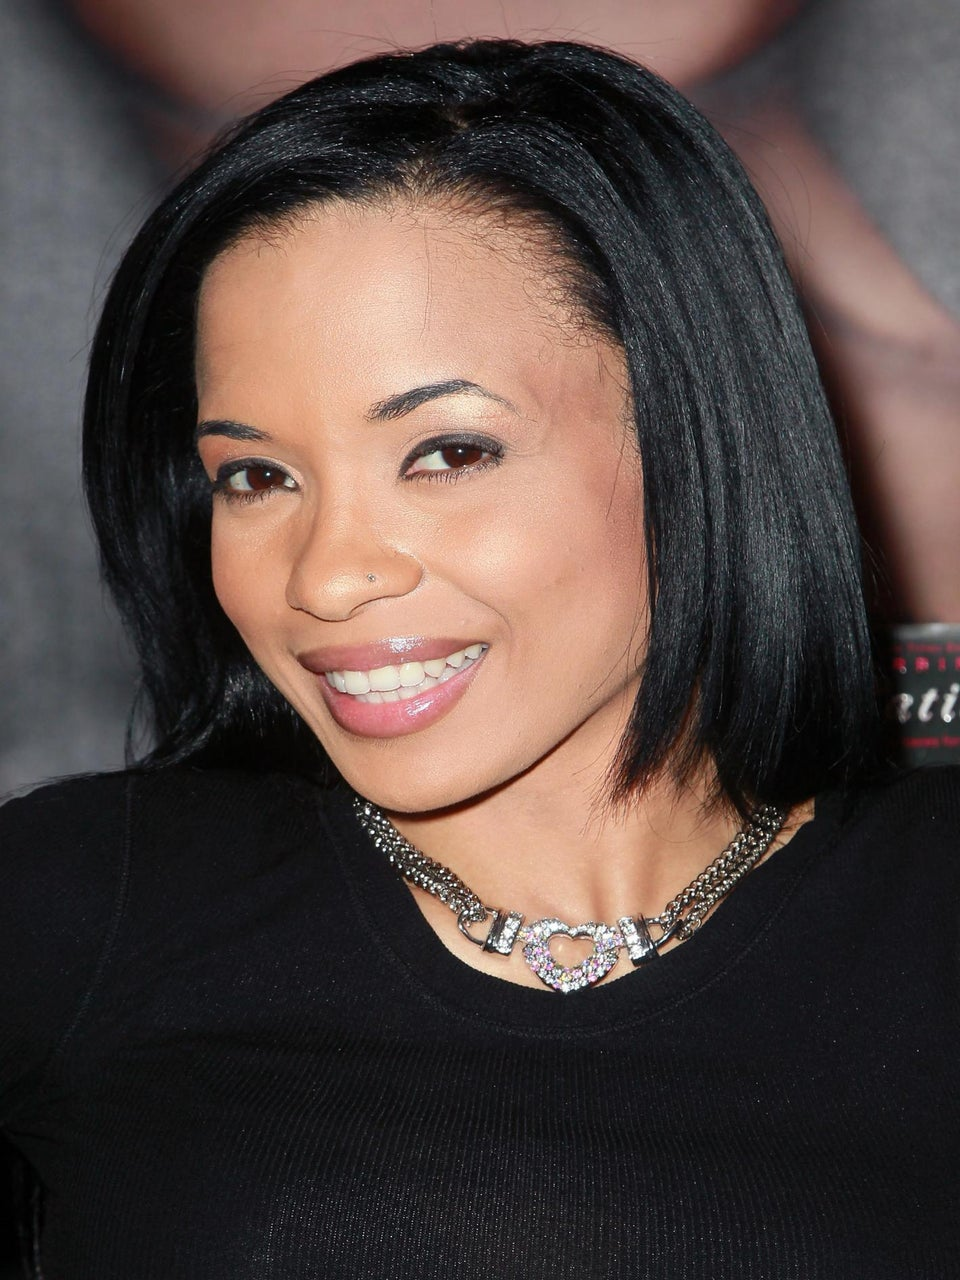 Karrine Steffans Talks Slut-Shaming: 'Sexual Pasts Have Nothing to Do with Worth and Purpose'